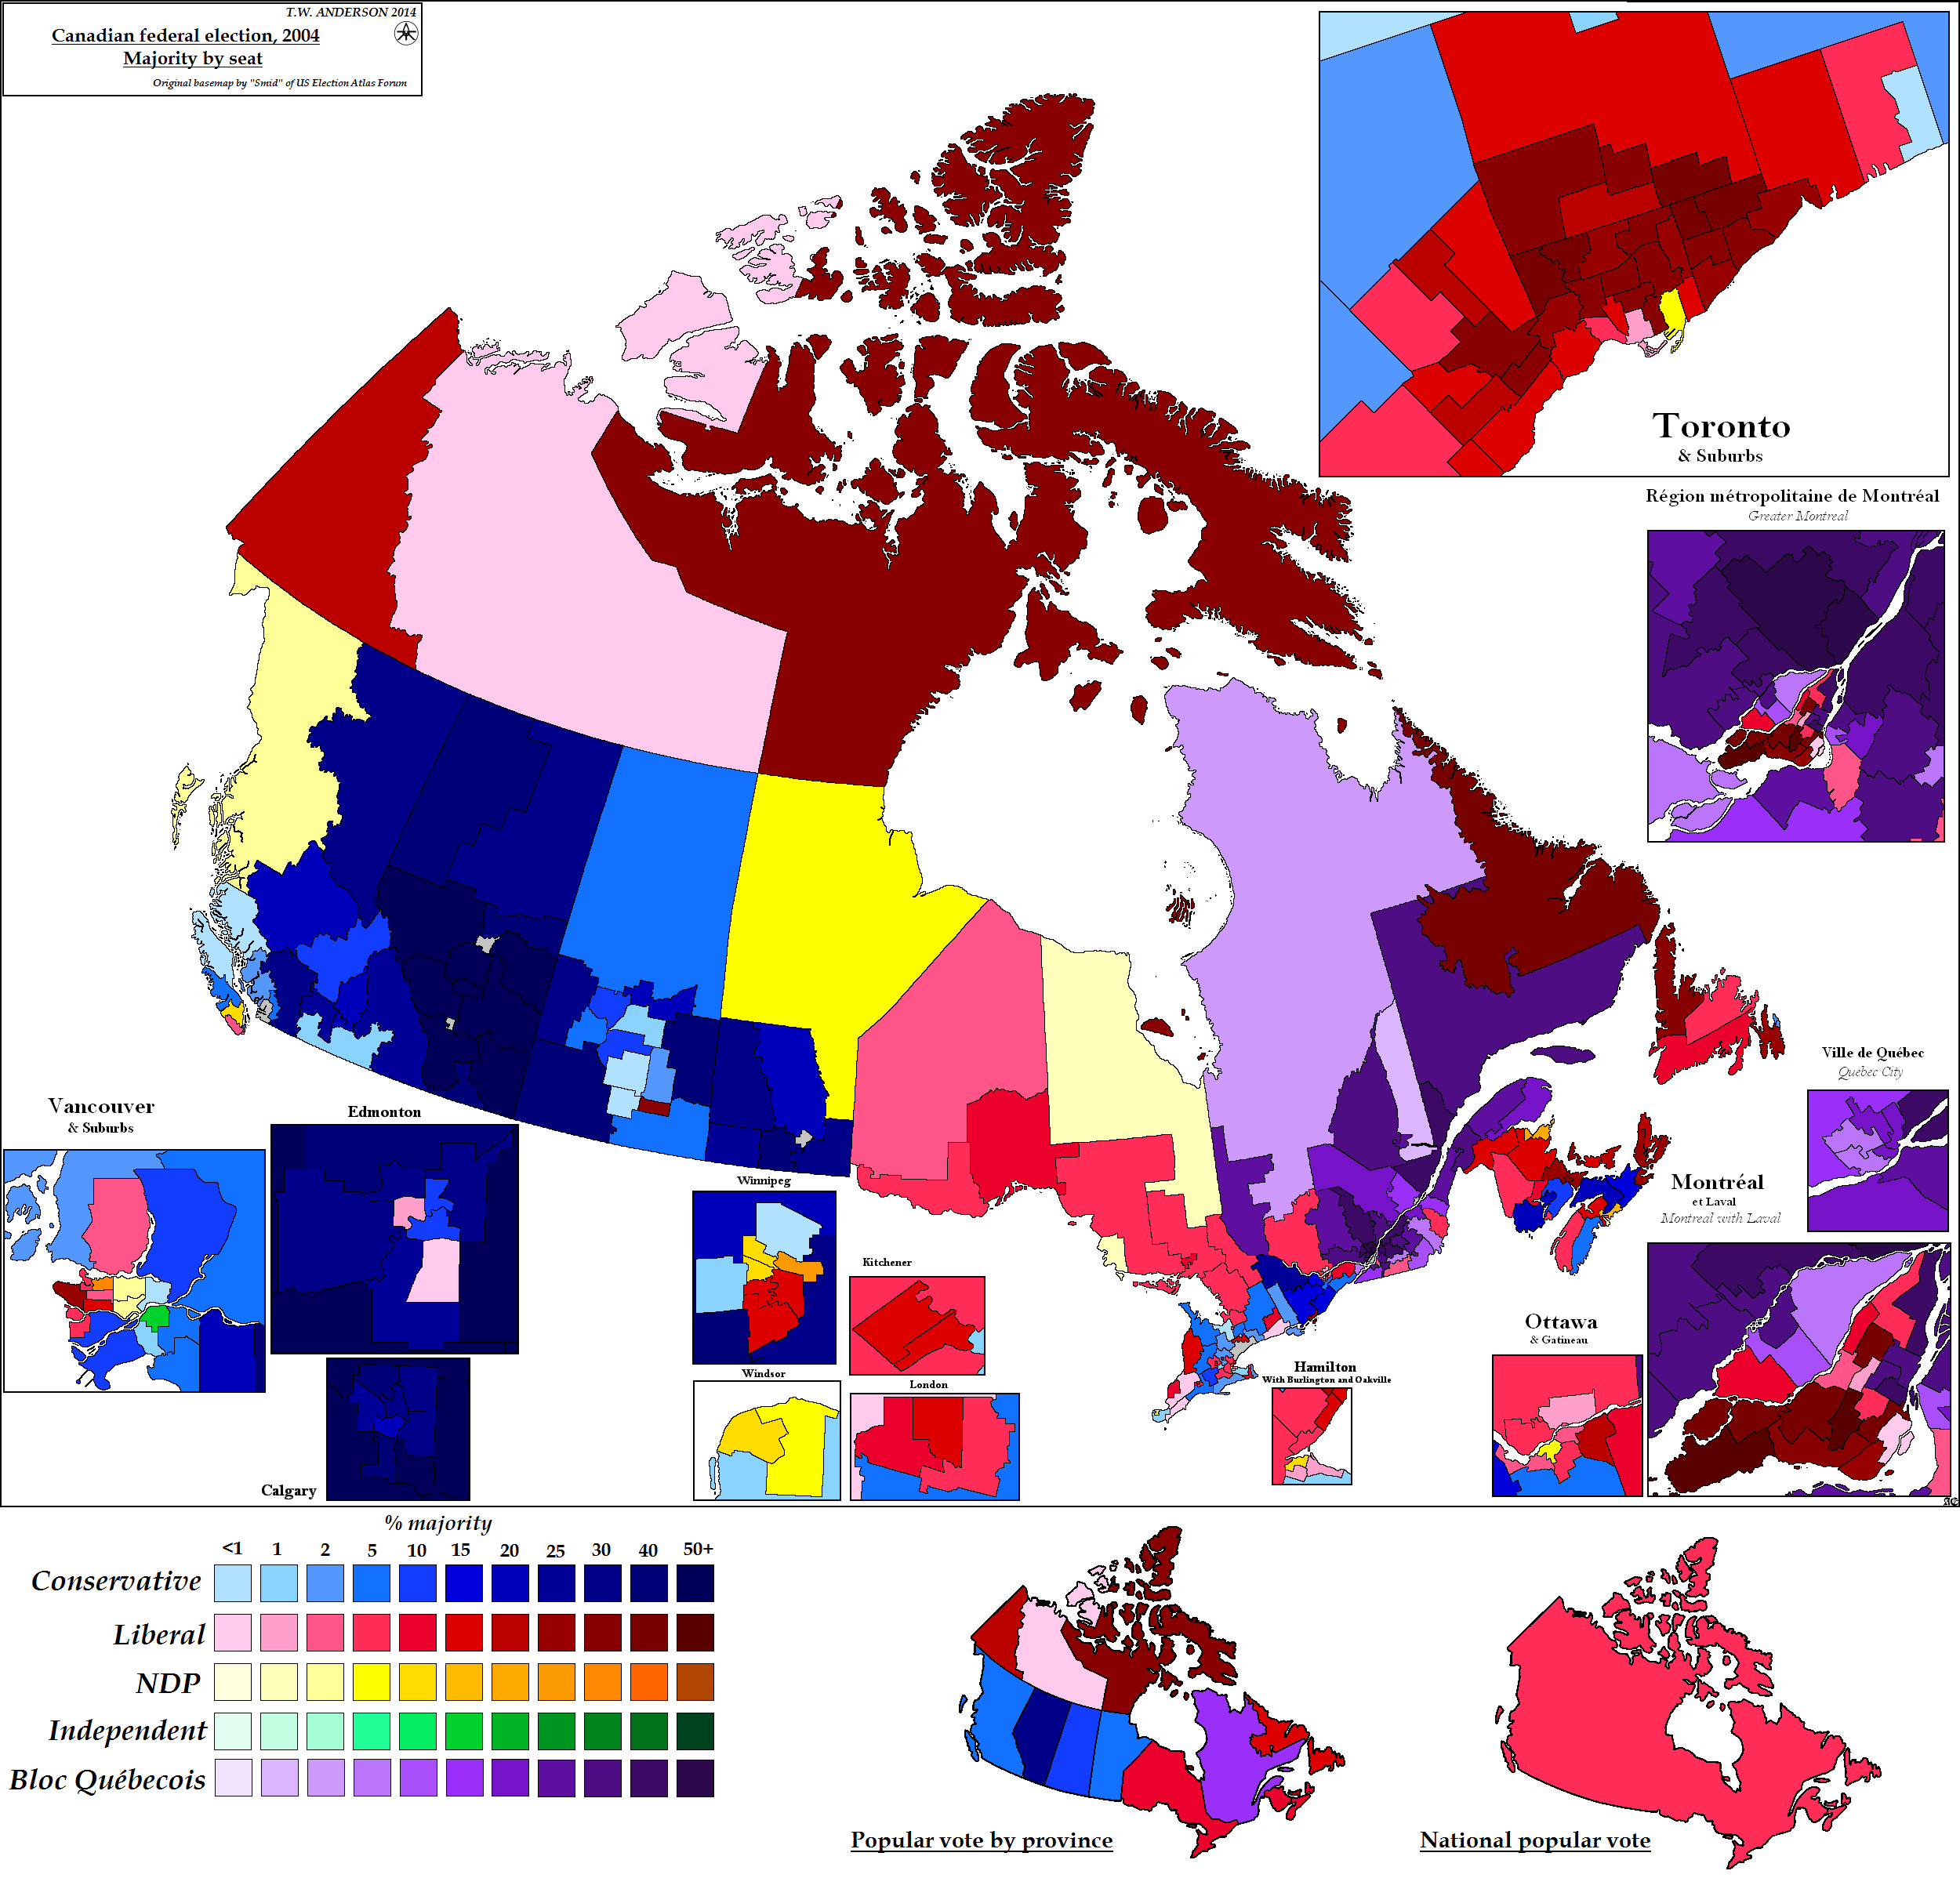 federalism in canada Fiscal federalism in canada the equalization program was created in 1957 to equalize provincial fiscal capacity the equalization program was significantly modified in 1982 with the introduction of a 5 province standard the canadian constitution (1982)part iii: equalization and regional disparities the evolution of the equalization program from.